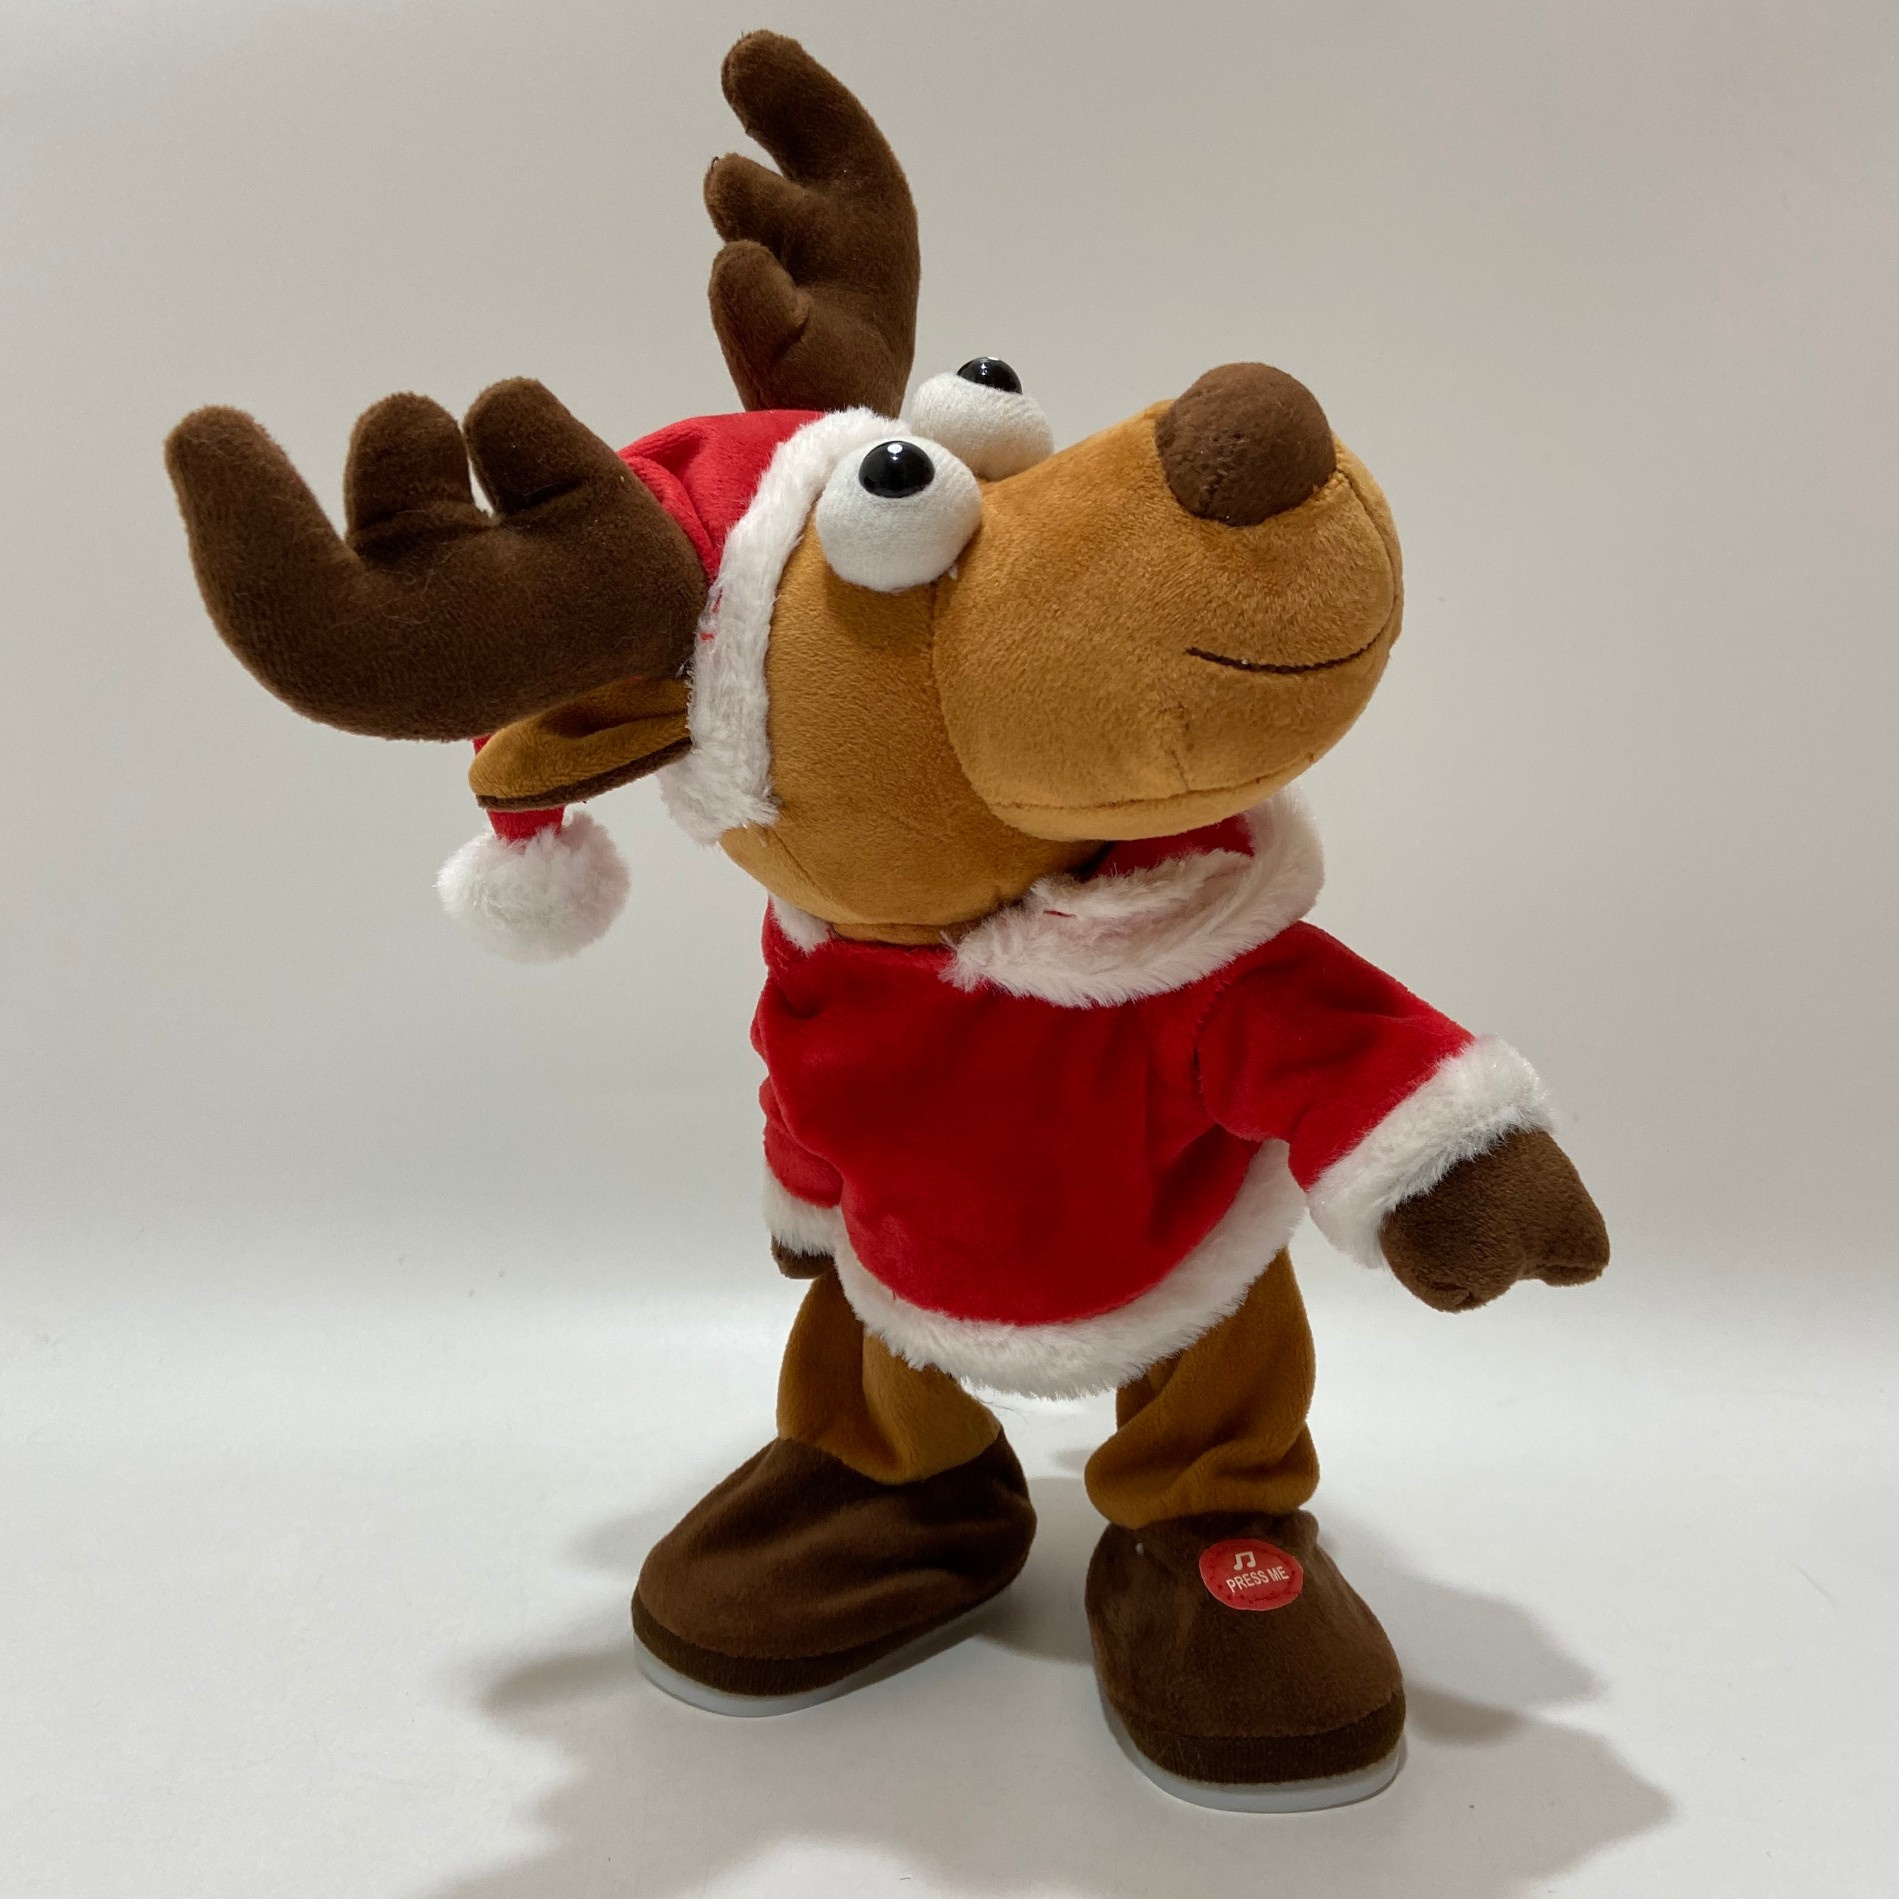 Shaking Buttom Reindeer With Music Manufacturers, Shaking Buttom Reindeer With Music Factory, Supply Shaking Buttom Reindeer With Music